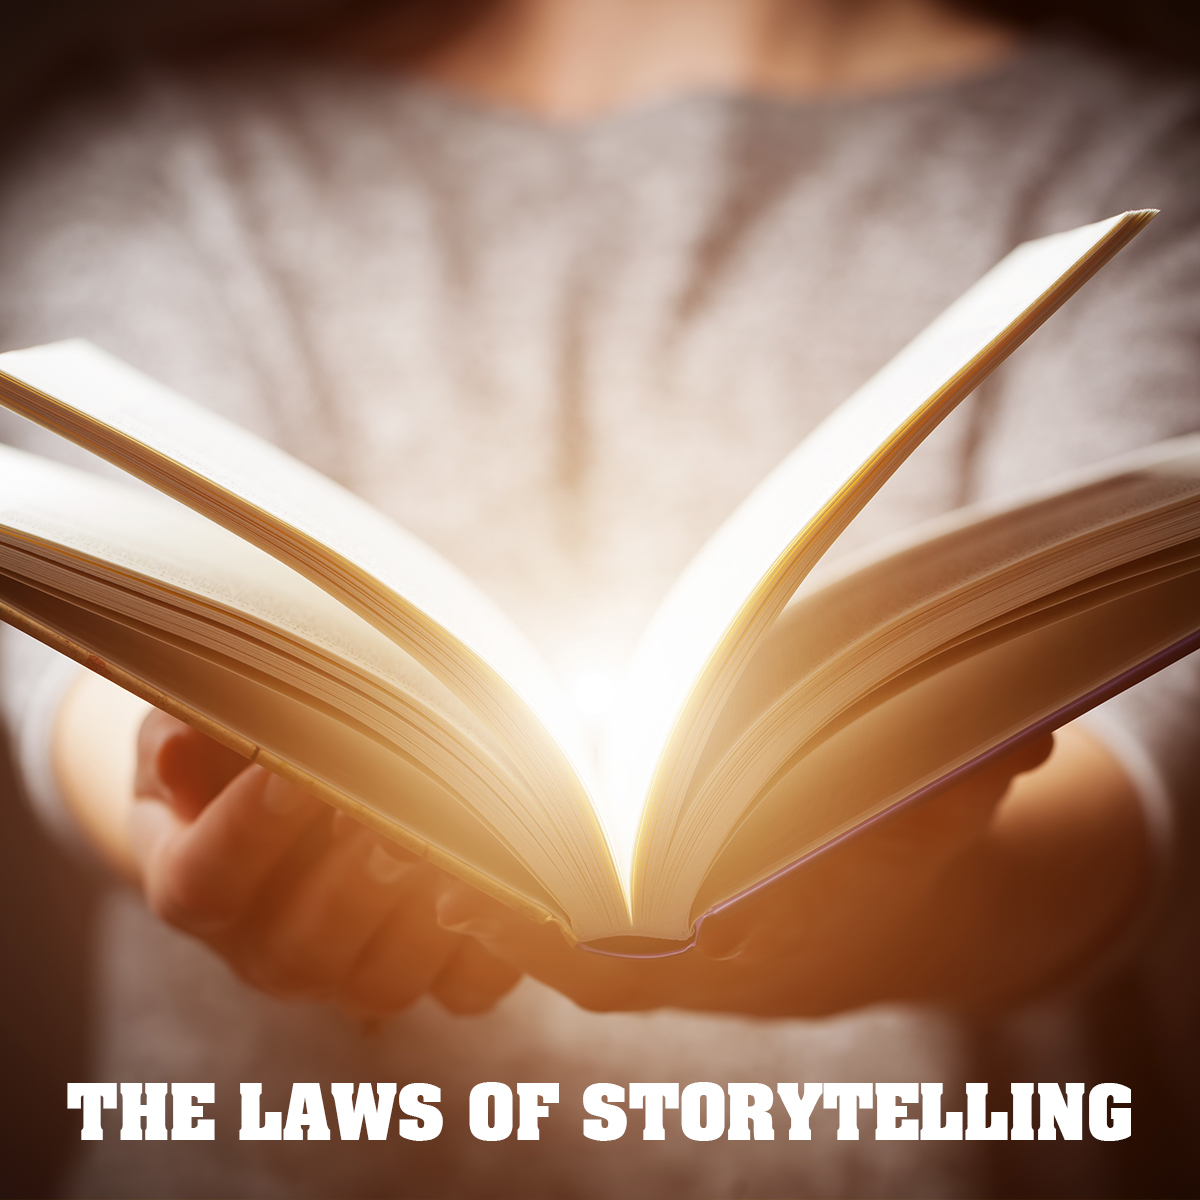 PODCAST PALOOZA PLAYBACK: Make Your Social Soar With These Laws Of Brand Storytelling